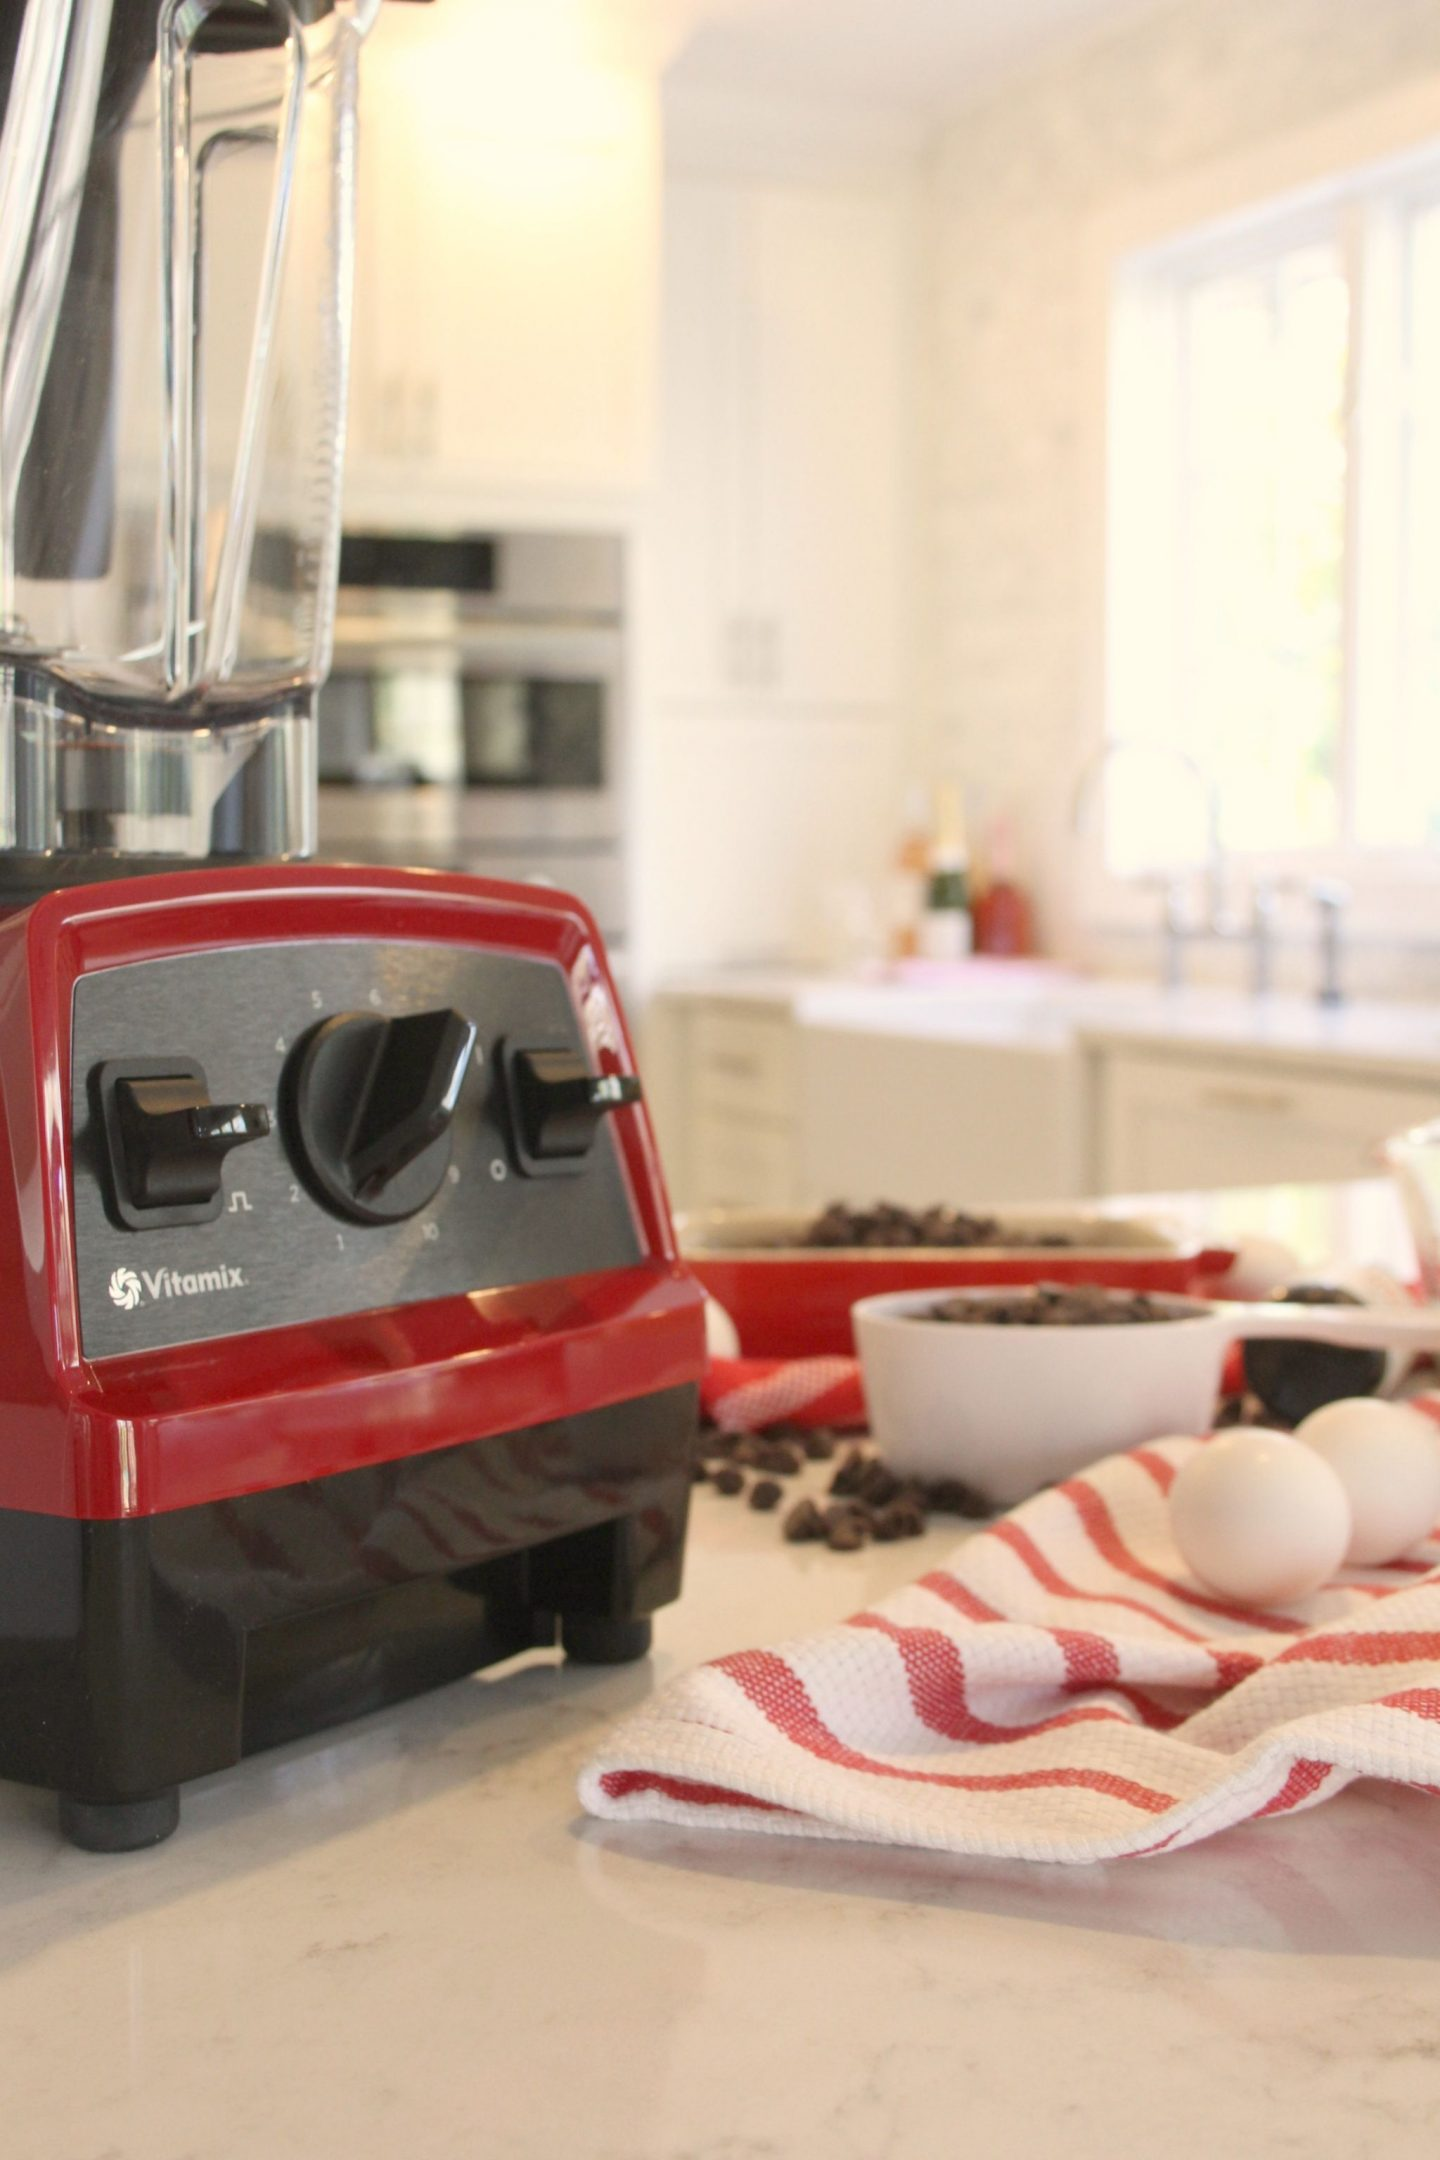 Vitamix Explorian E320 in red - Hello Lovely Studio